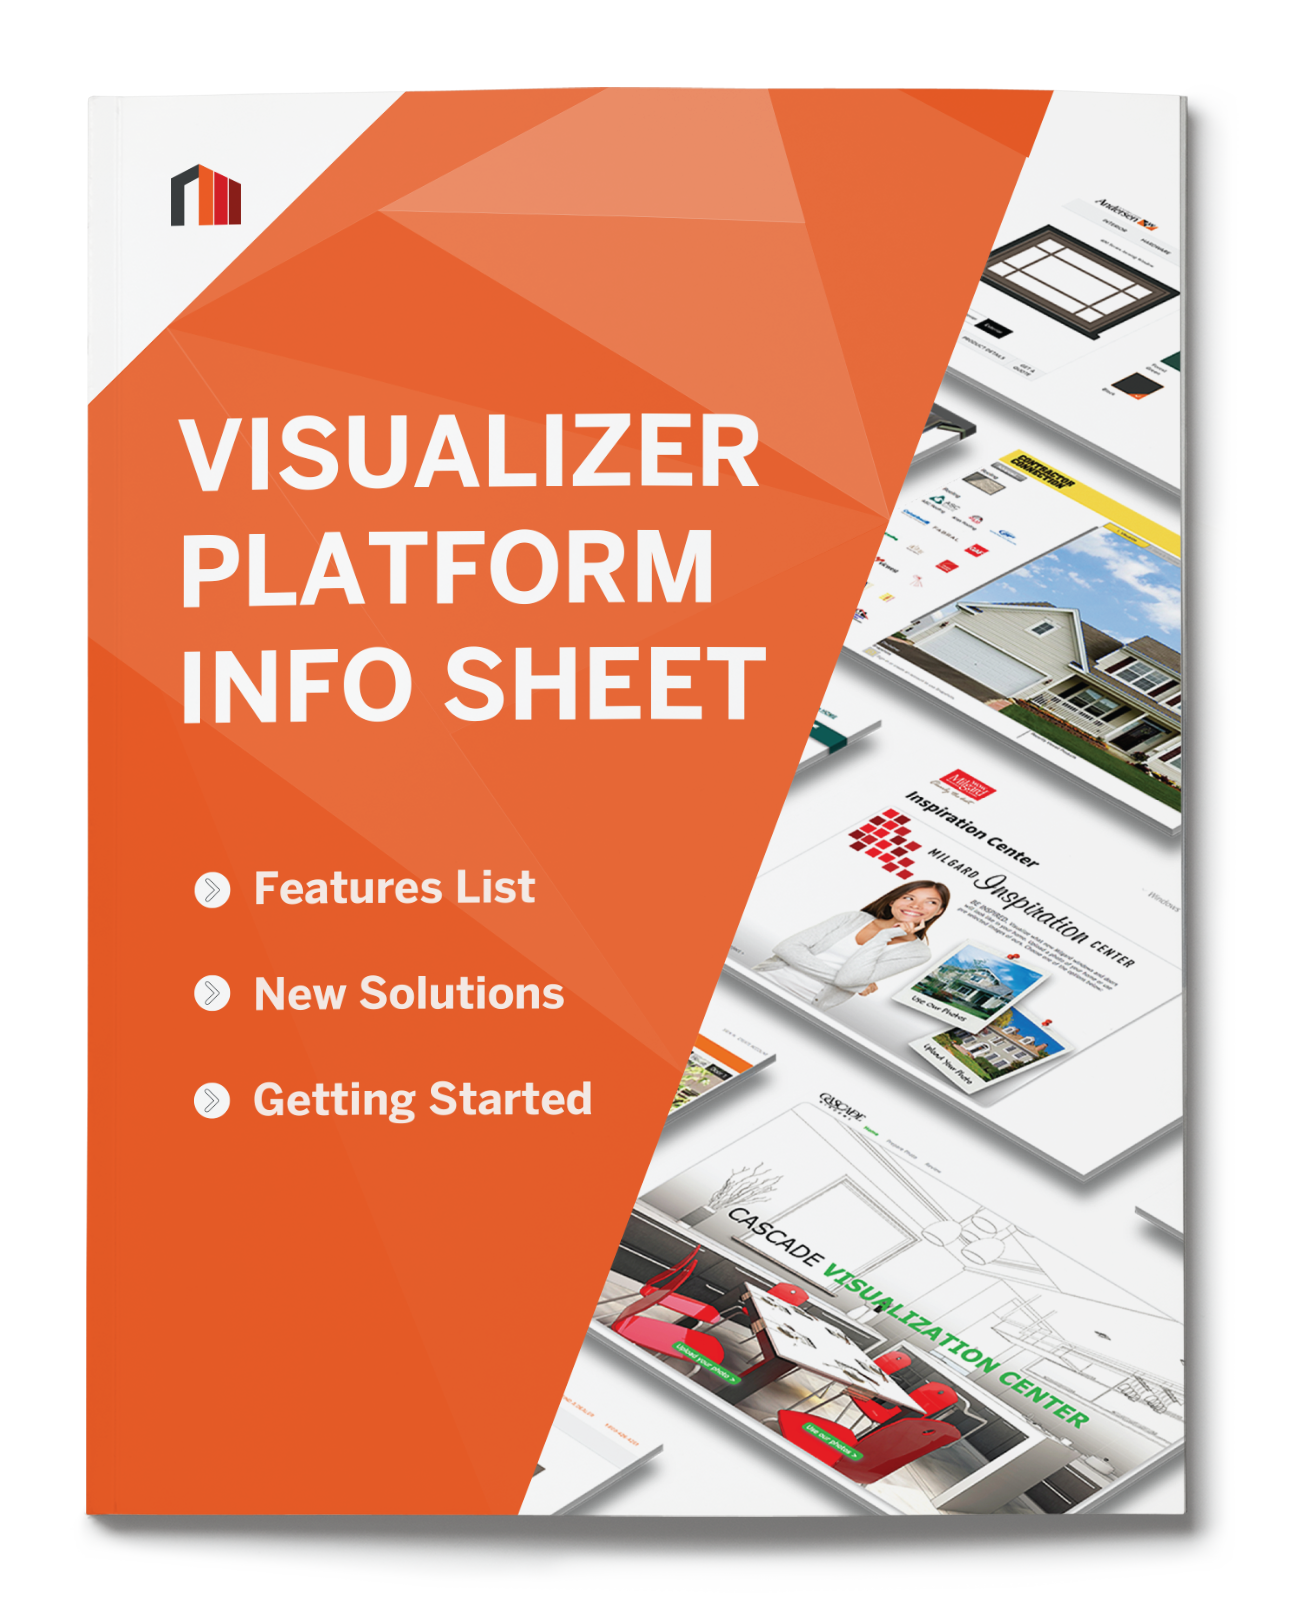 Visualizer Product Sheet Mockup (v2)